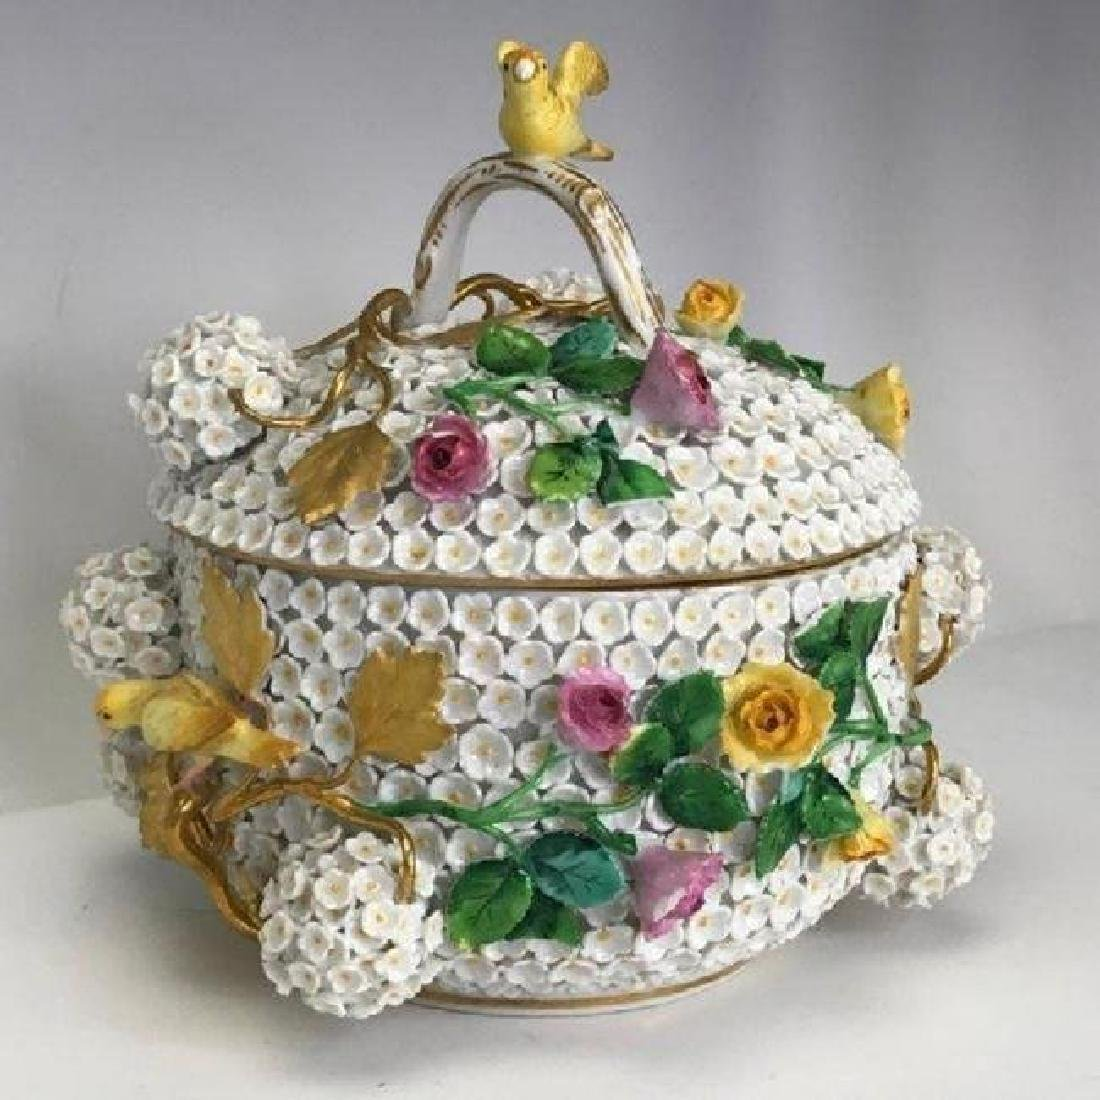 19TH C. MEISSEN SNOWBALL BOWL AND COVER